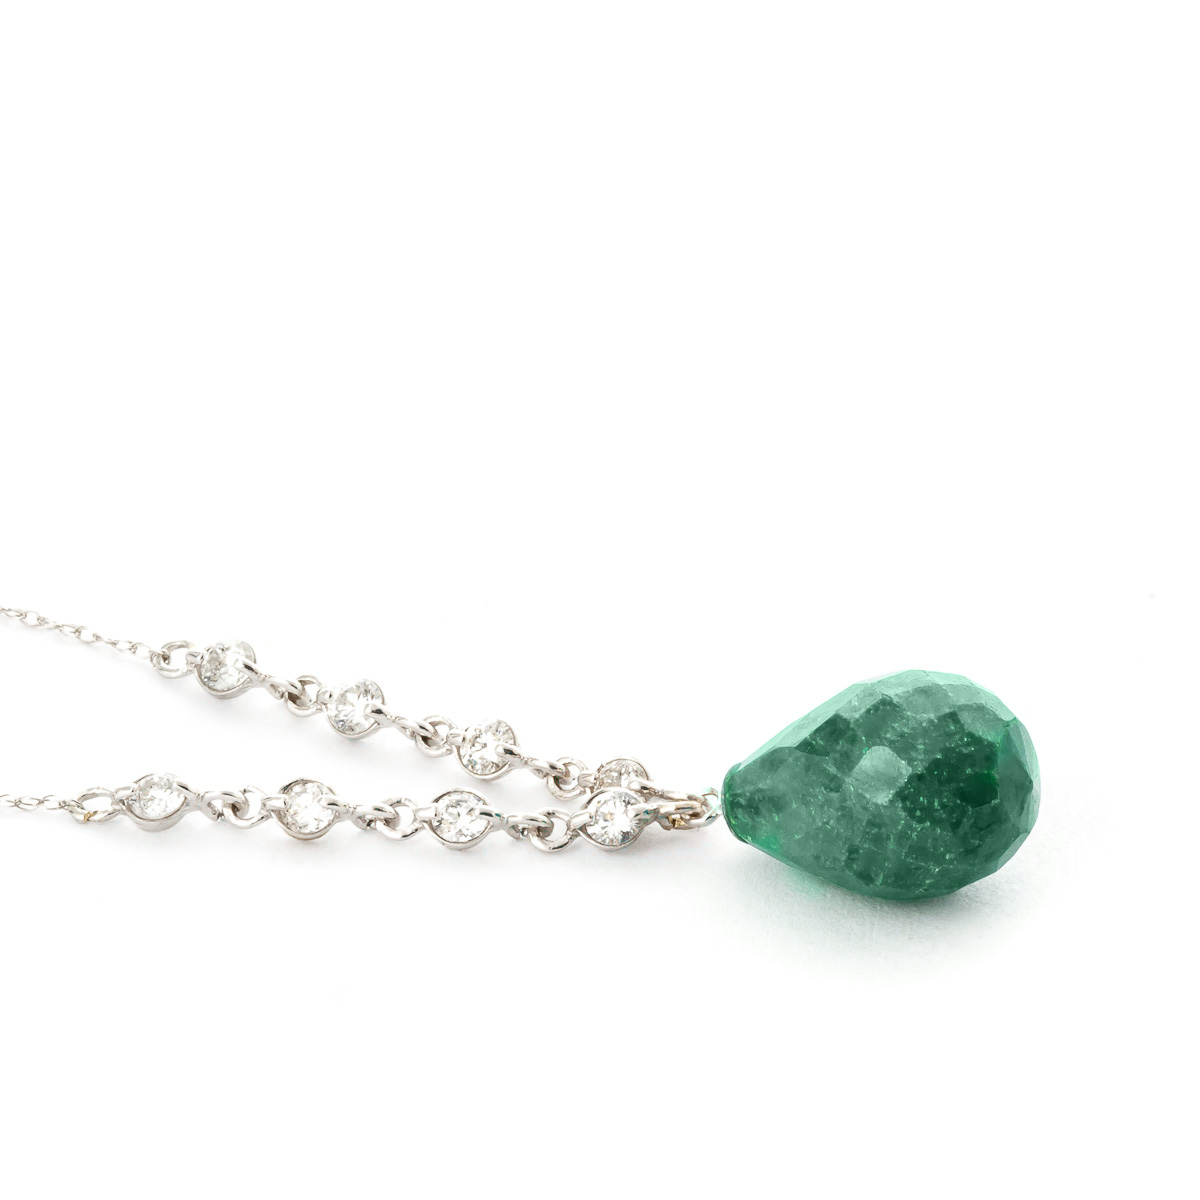 Briolette Cut Emerald Pendant Necklace 15.6 ctw in 9ct White Gold